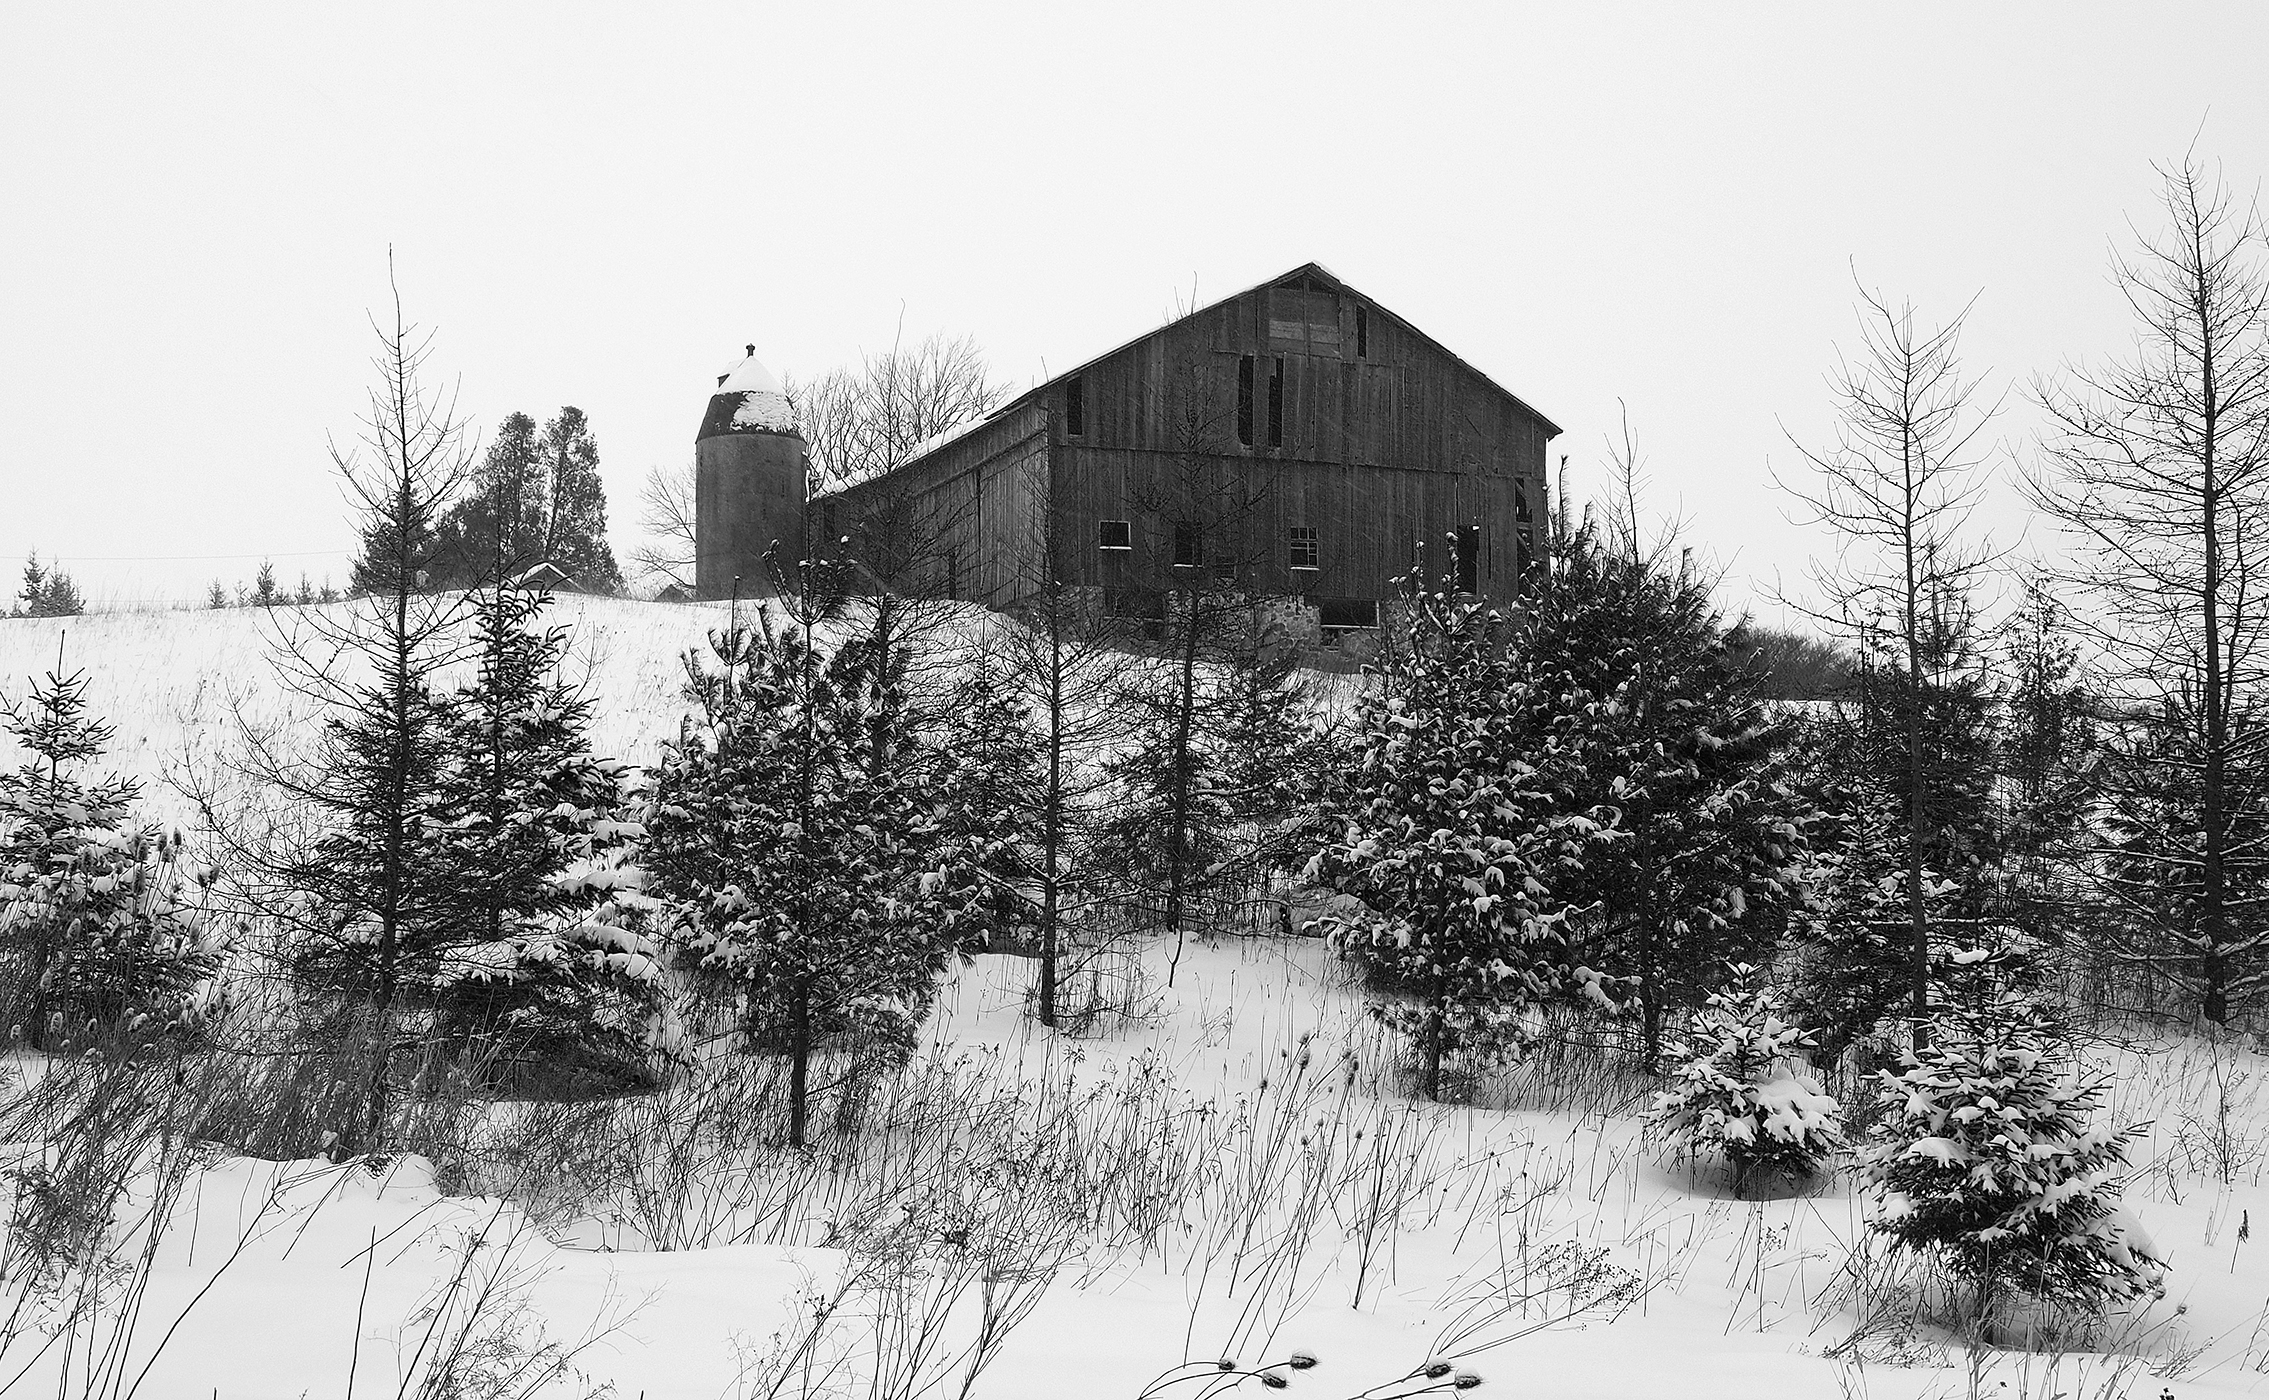 black and white photography by Susan Arness